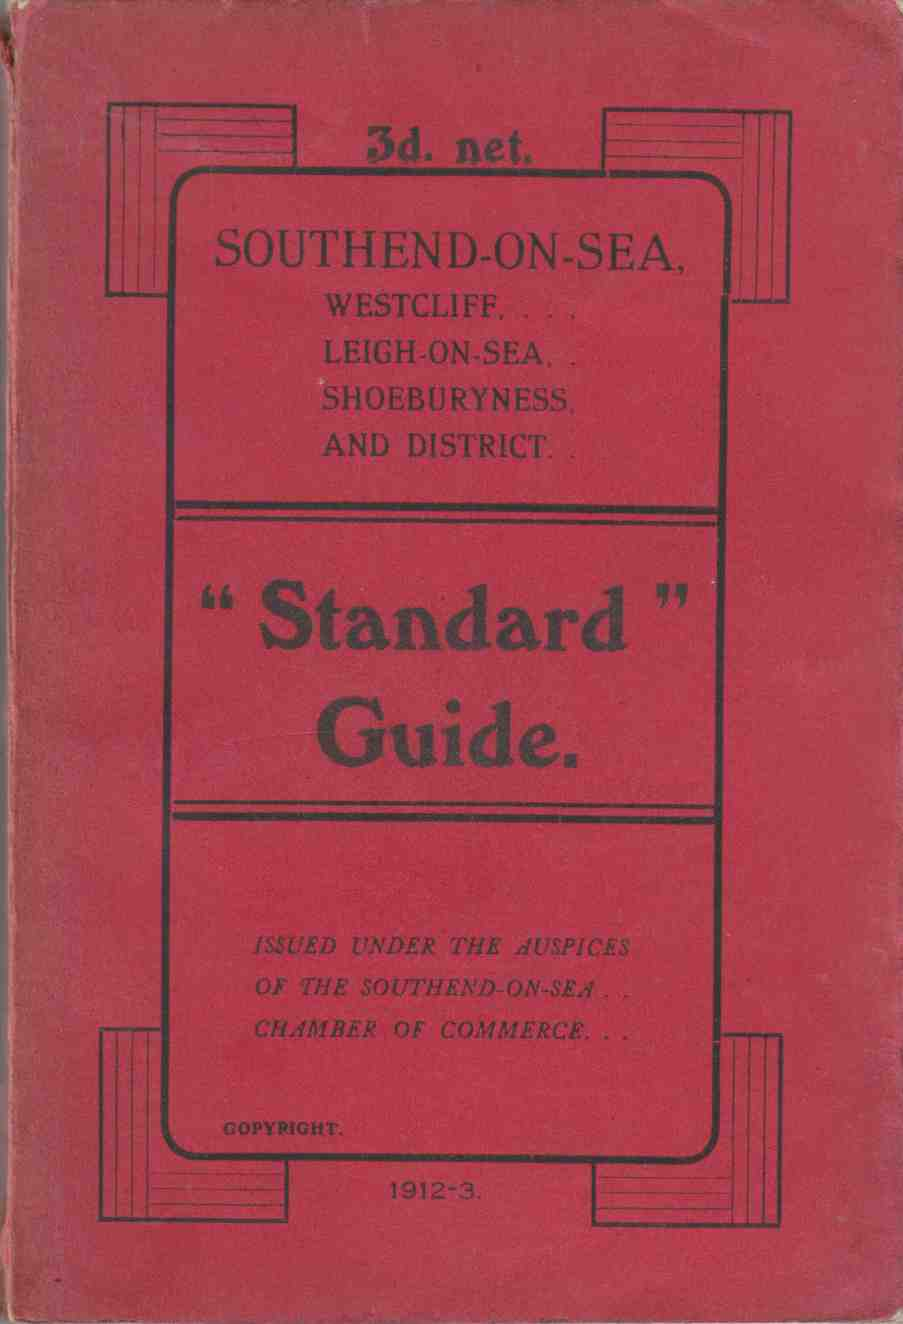 Image for Standard Guide to Southend-On-Sea, Westcliff, Leigh-On-Sea, Shoeburyness, and District